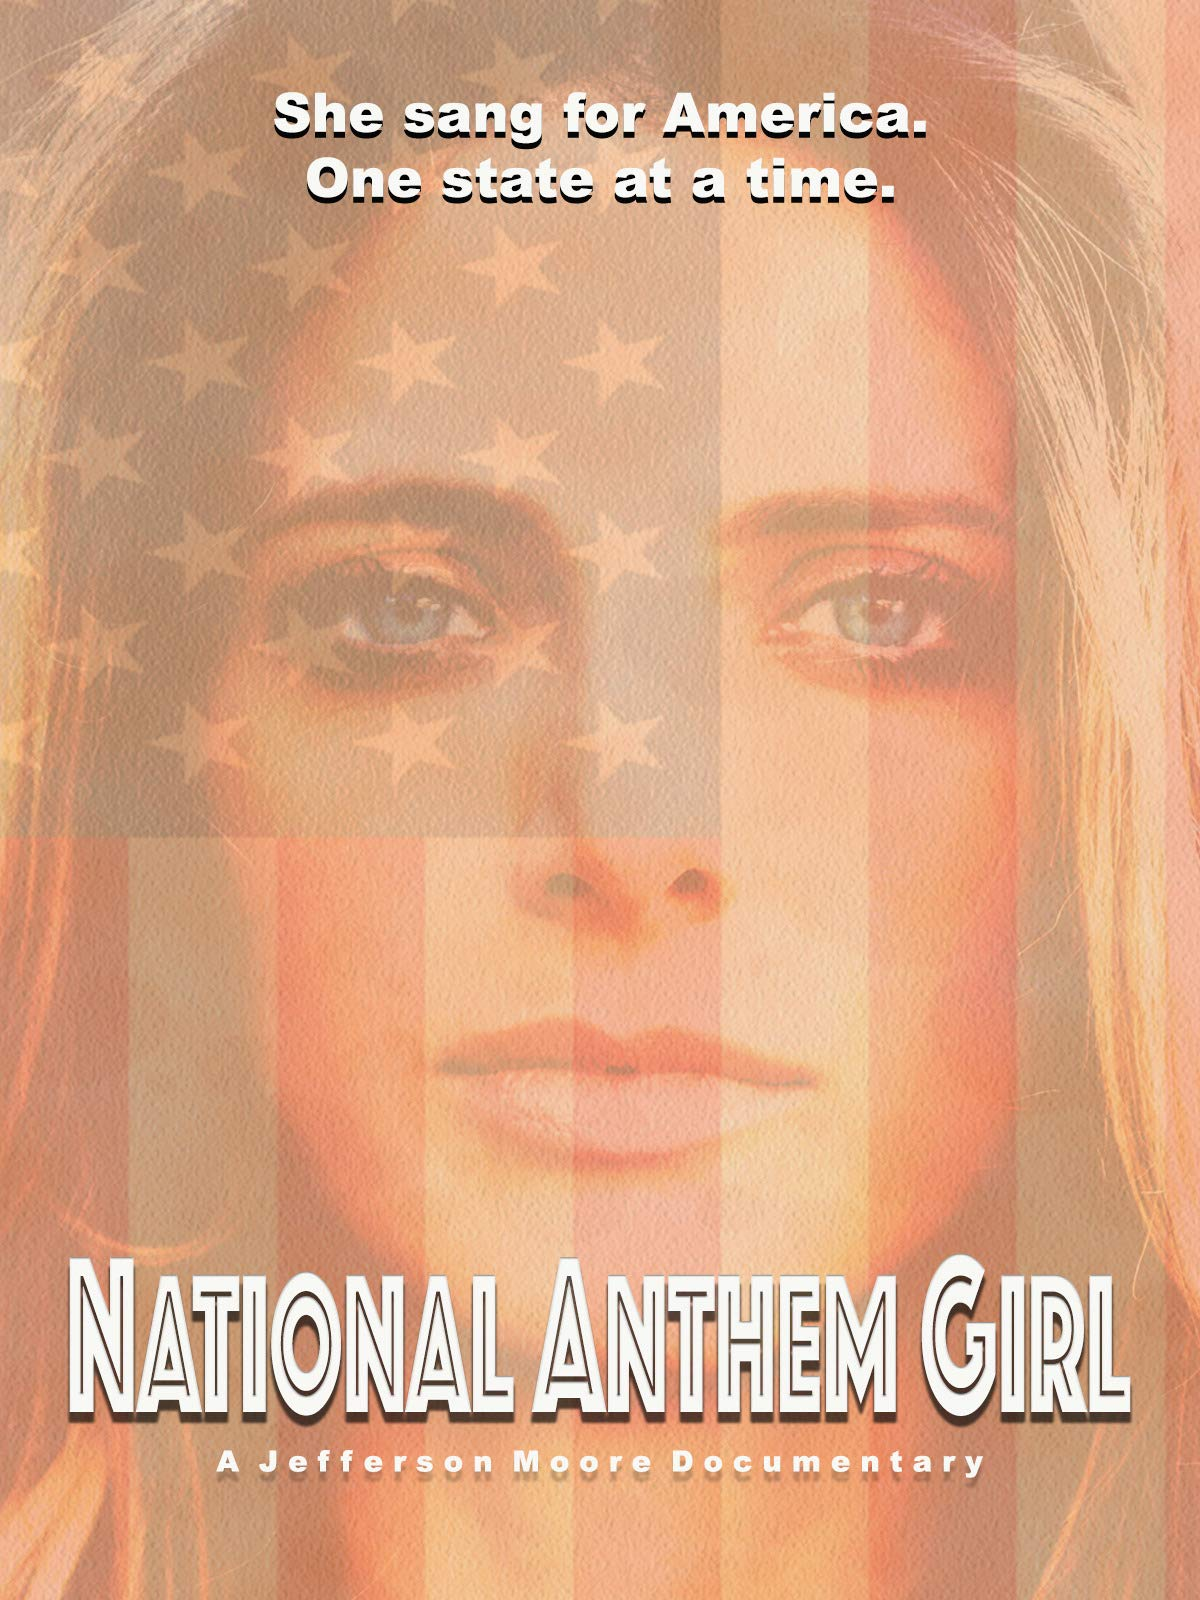 National Anthem Girl Documentary